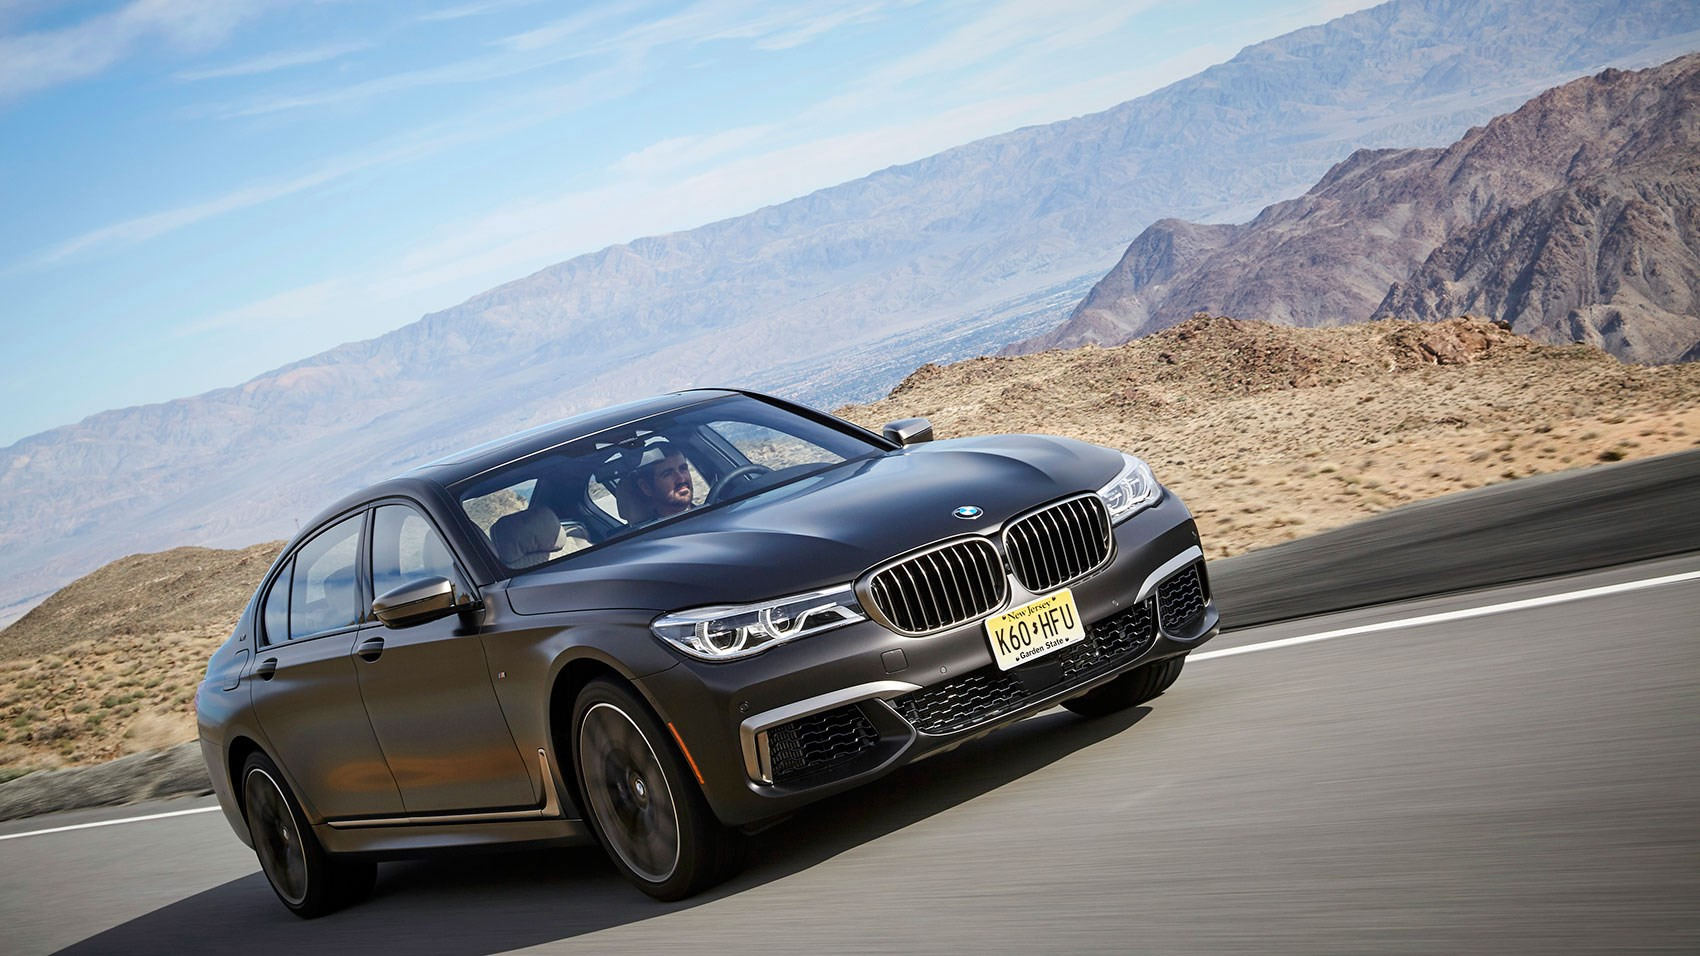 The New Bmw 760li Xdrive V12 Latest In A Long Line Of 7 Series